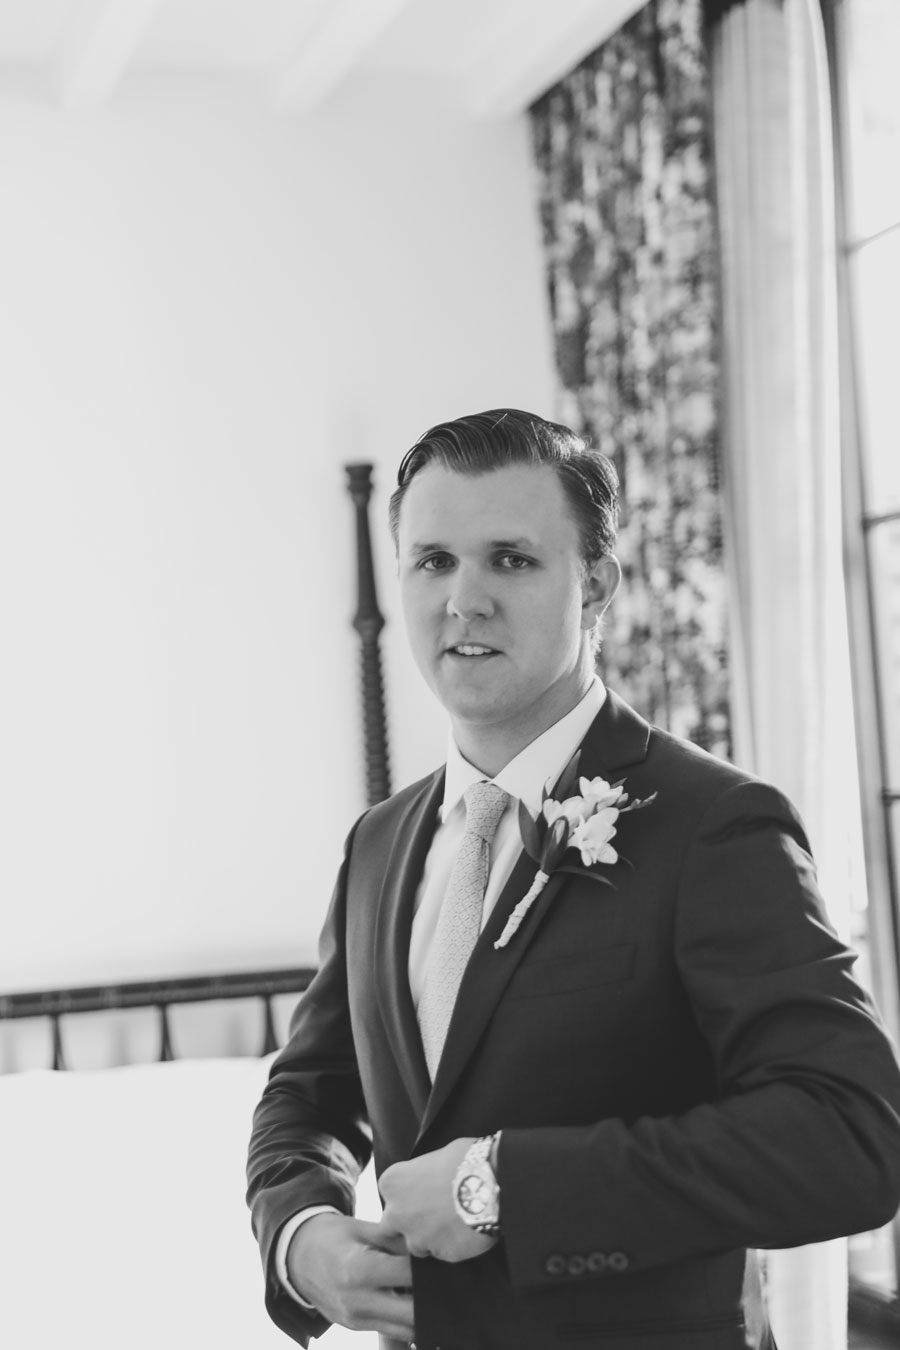 Groom getting ready at the Ludlow Hotel